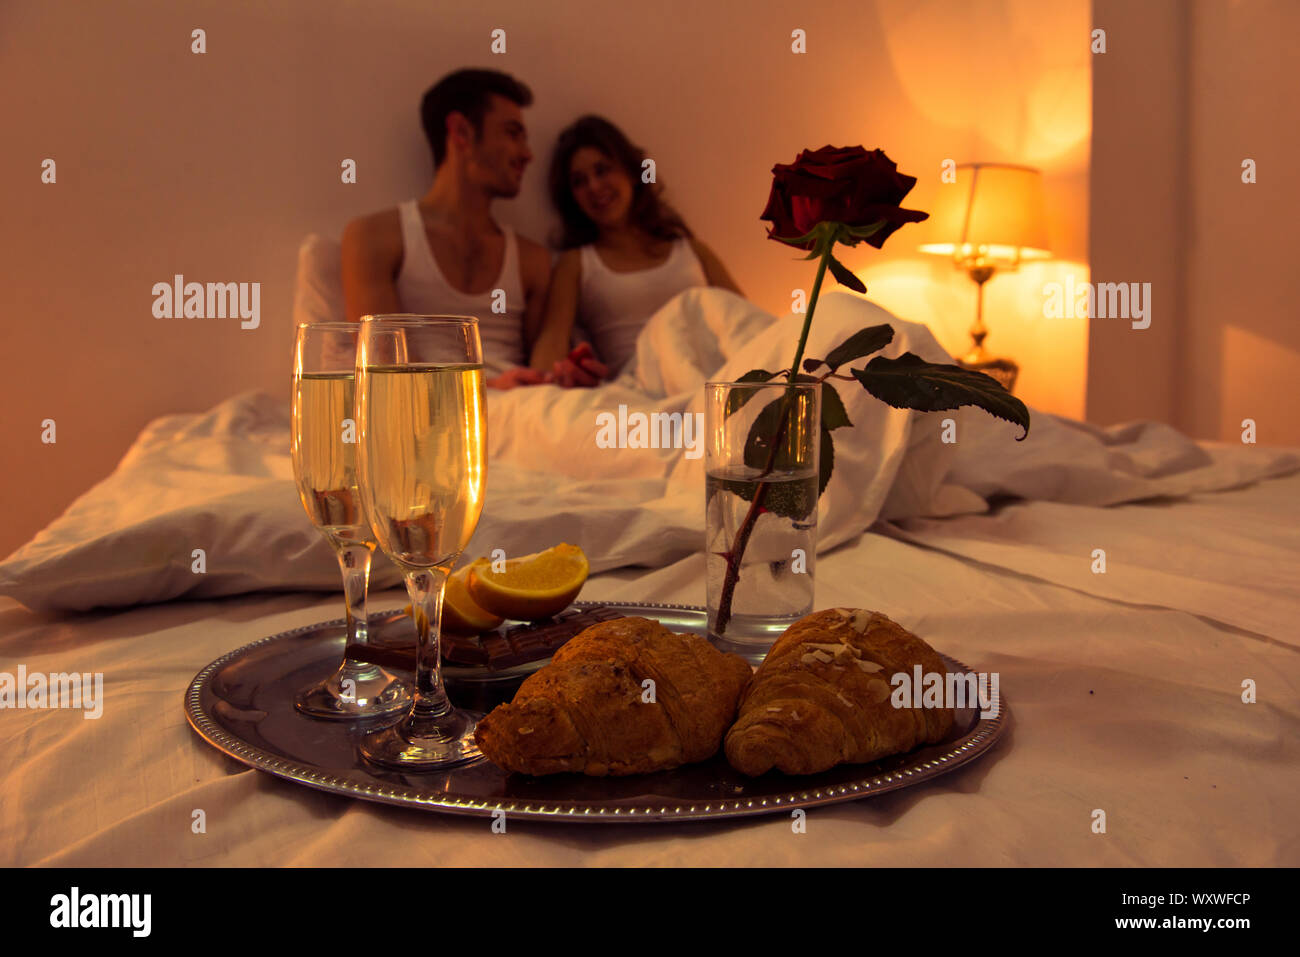 Couple In Love Having Romantic Supper In Bedroom Stock Photo Alamy